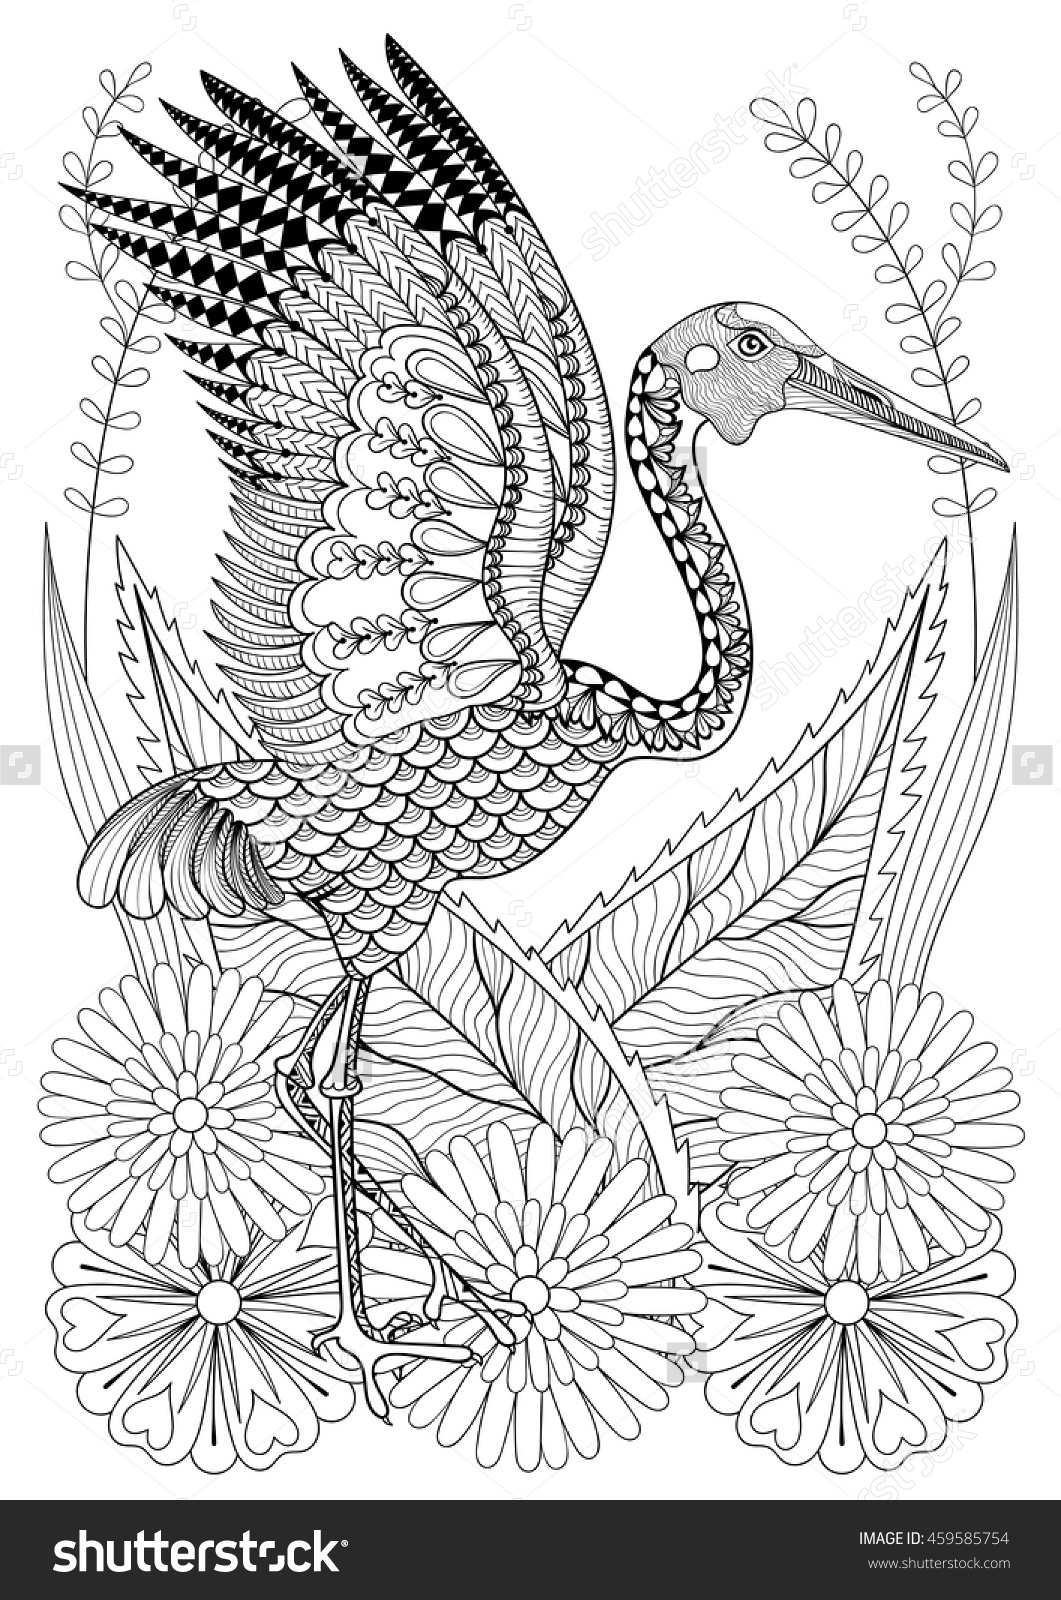 Brolga clipart #3, Download drawings